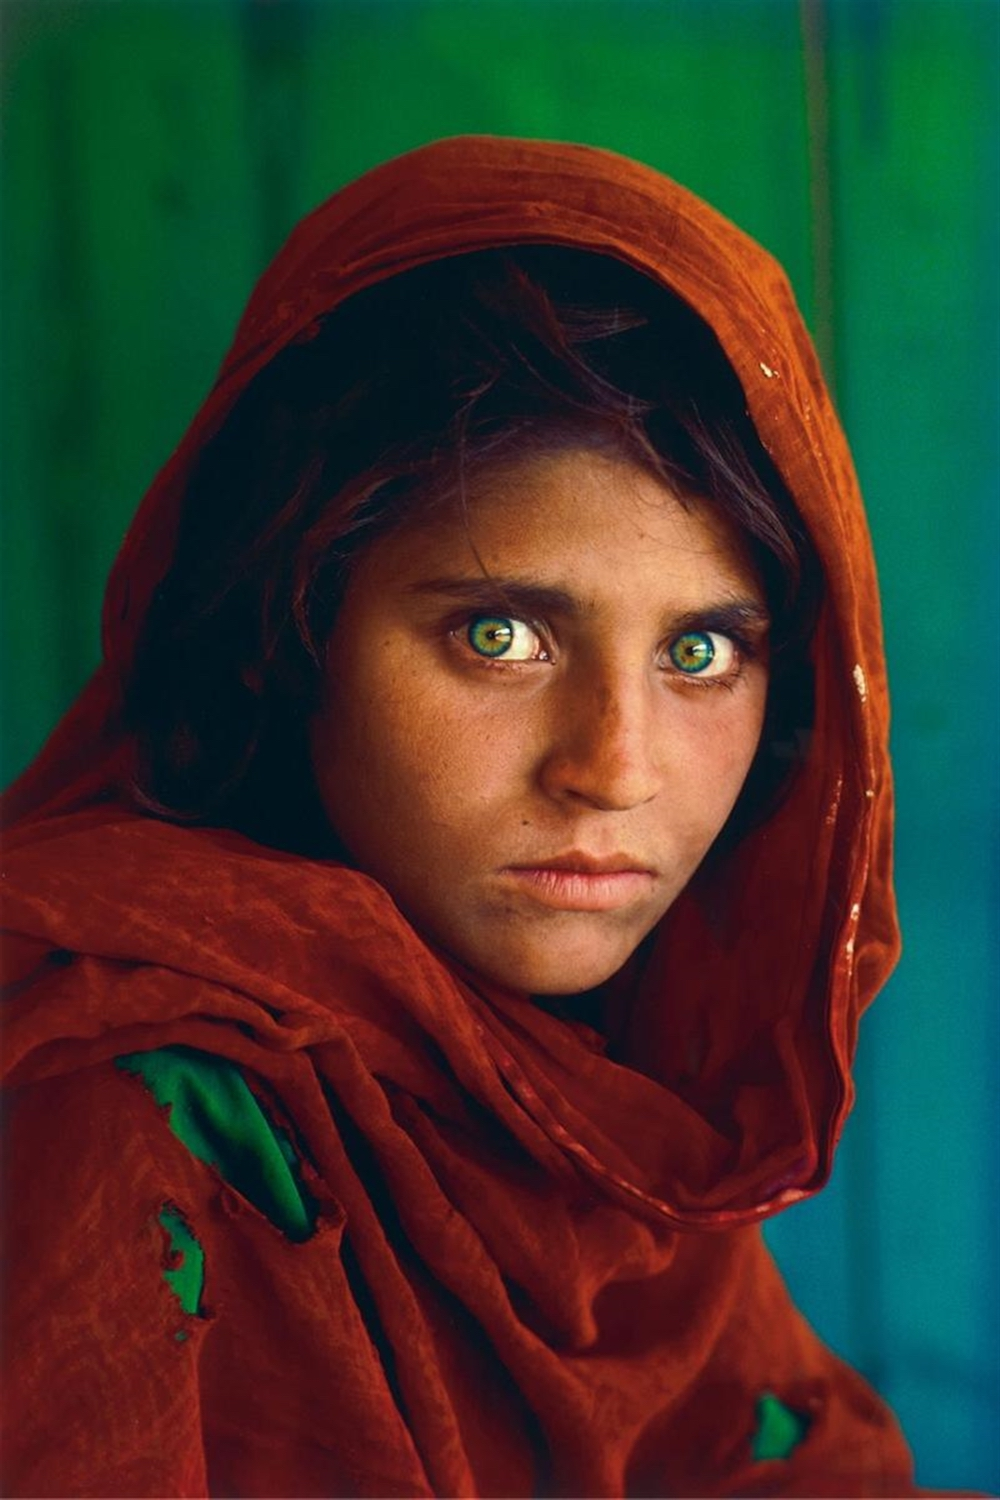 Steve-Mccurry-Afghan-Girl-Pakistan-1984